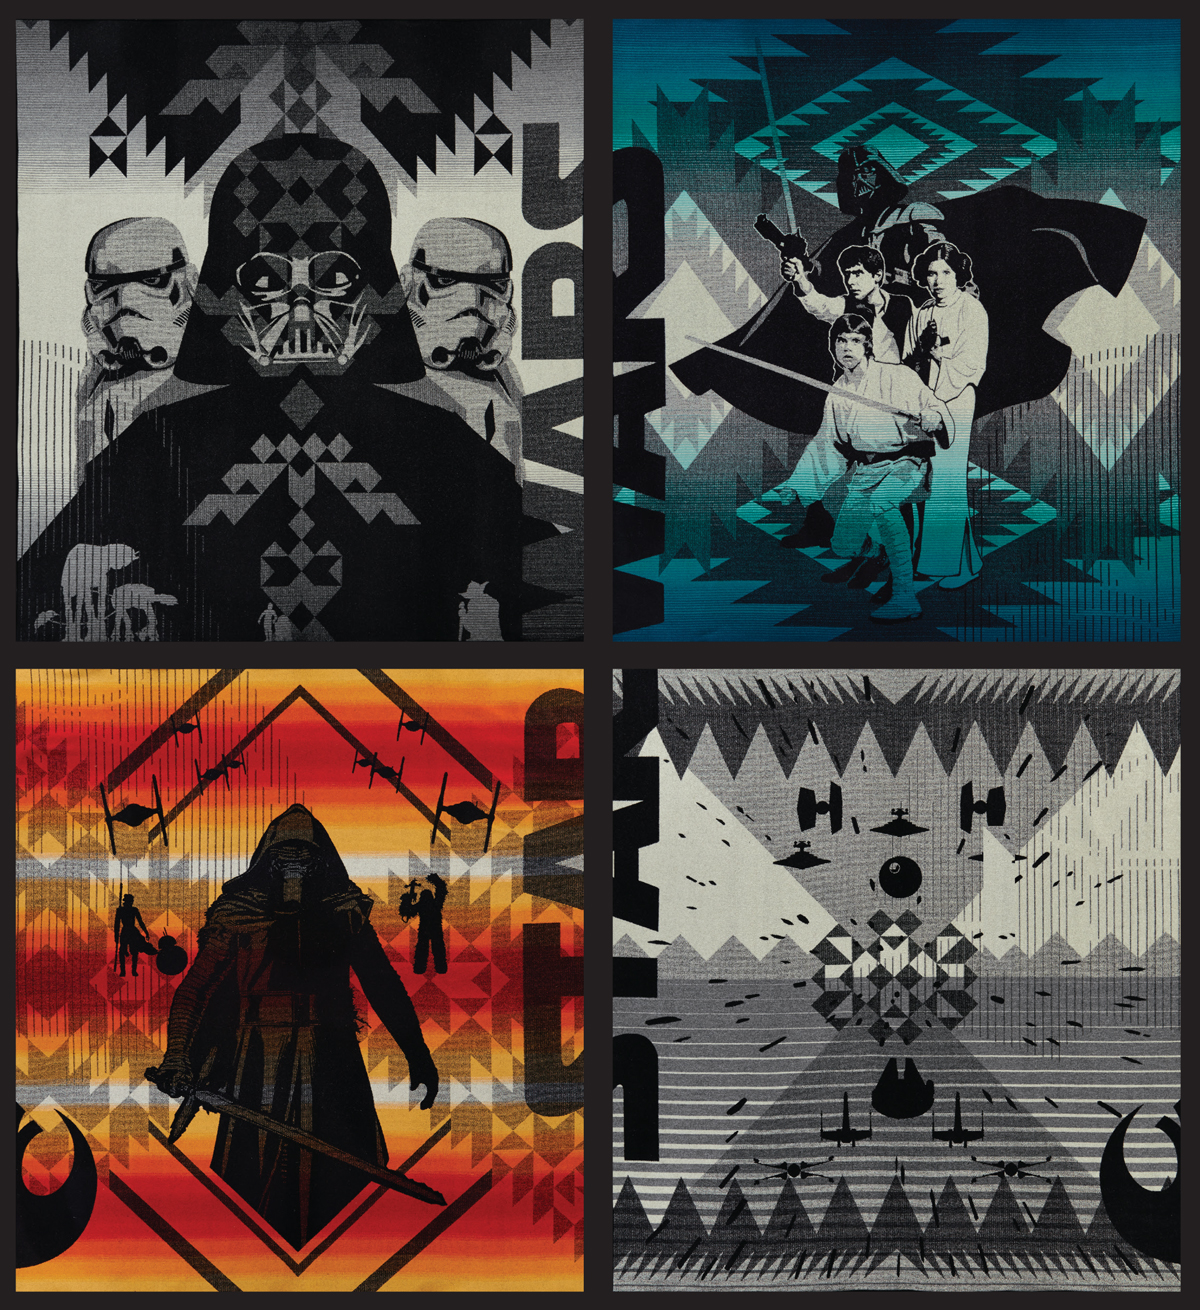 All 4 full-sized Star Wars blankets, shown as a full set.